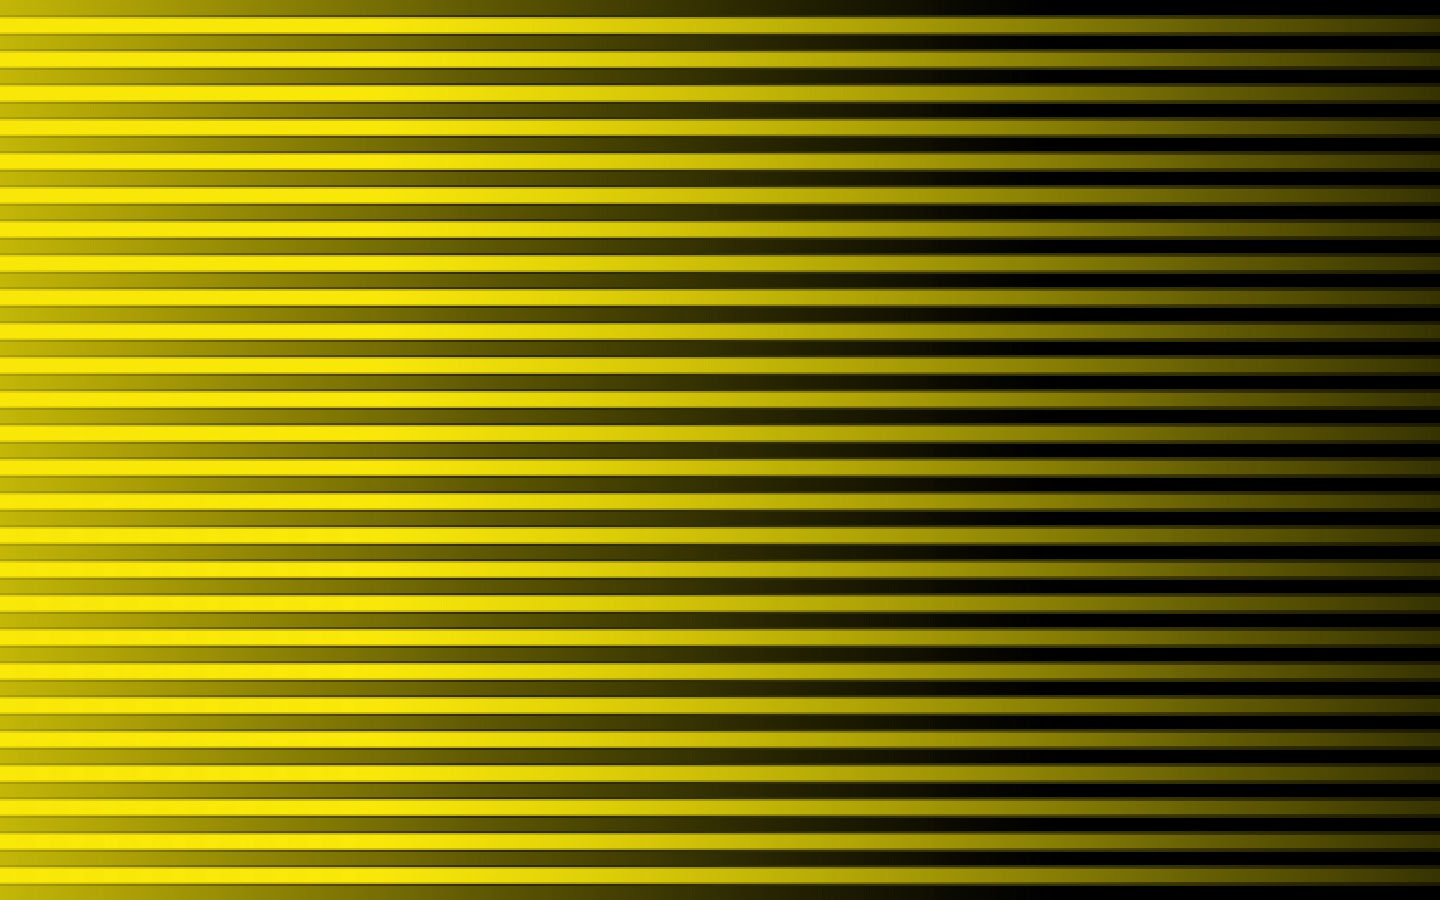 Blue And Yellow Striped Wallpaper: Yellow Stripe Wallpaper